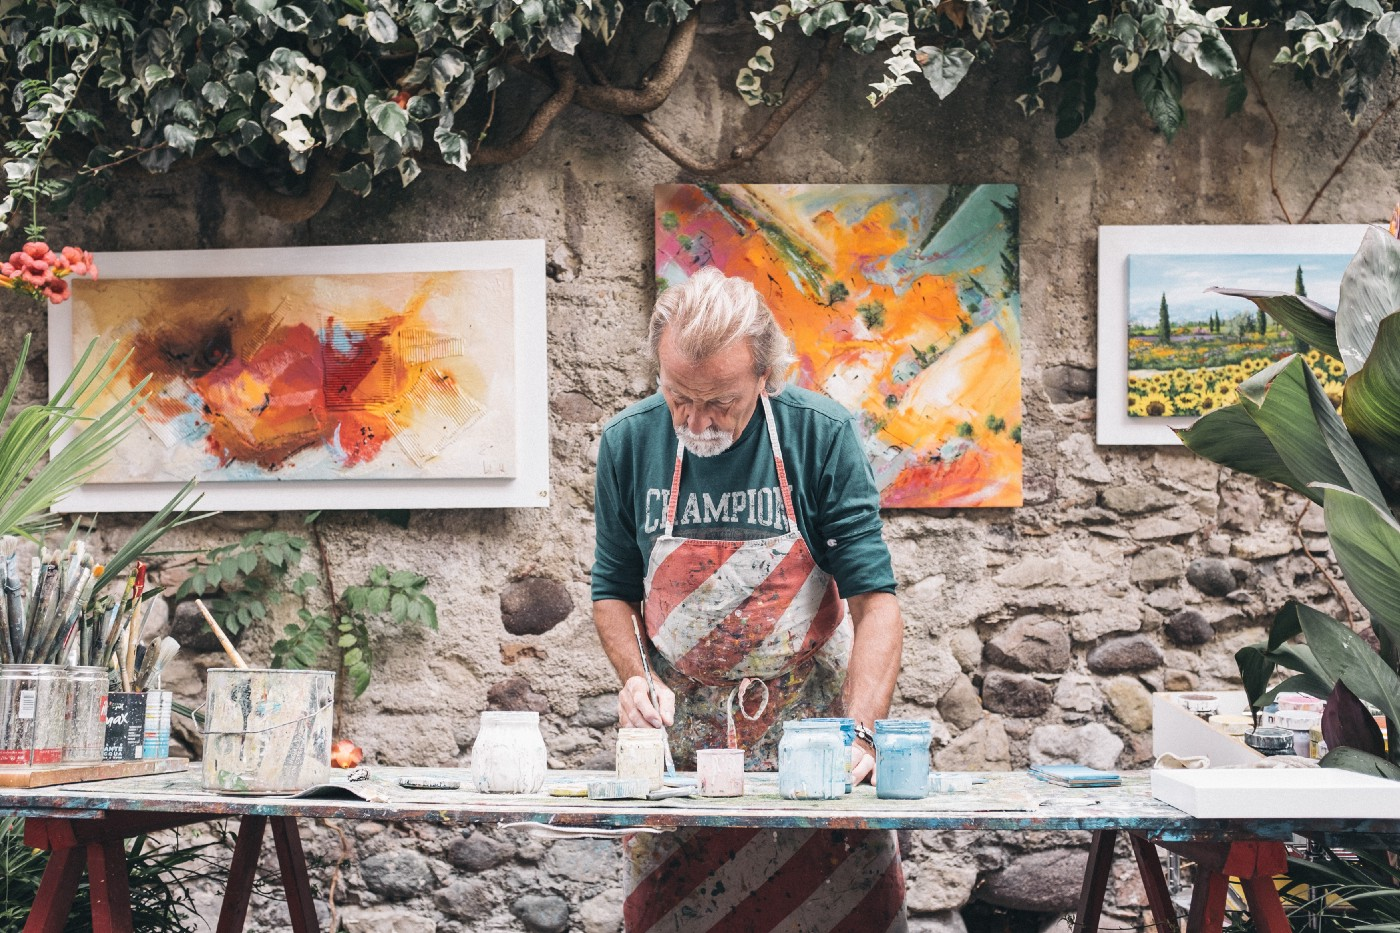 Creativity comes in many forms, including painting